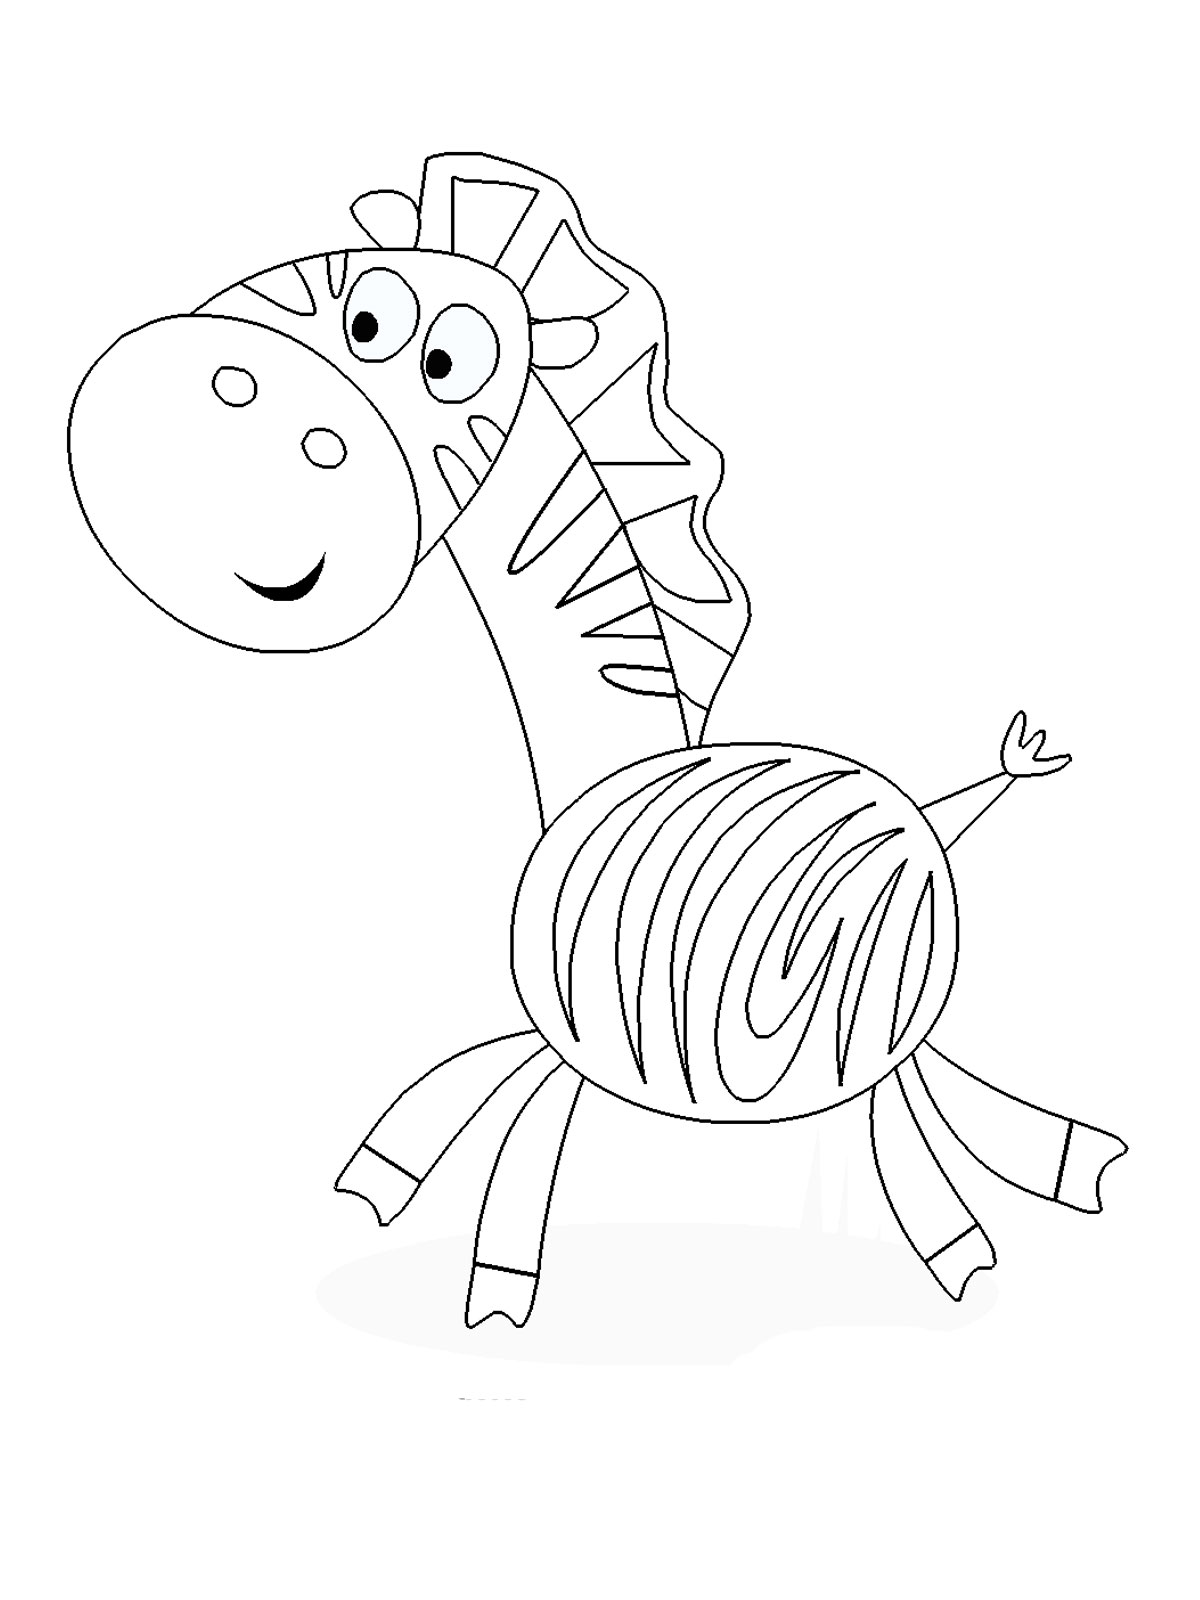 coloring pages printable for teenagers quote coloring pages for adults and teens best coloring pages for coloring teenagers printable